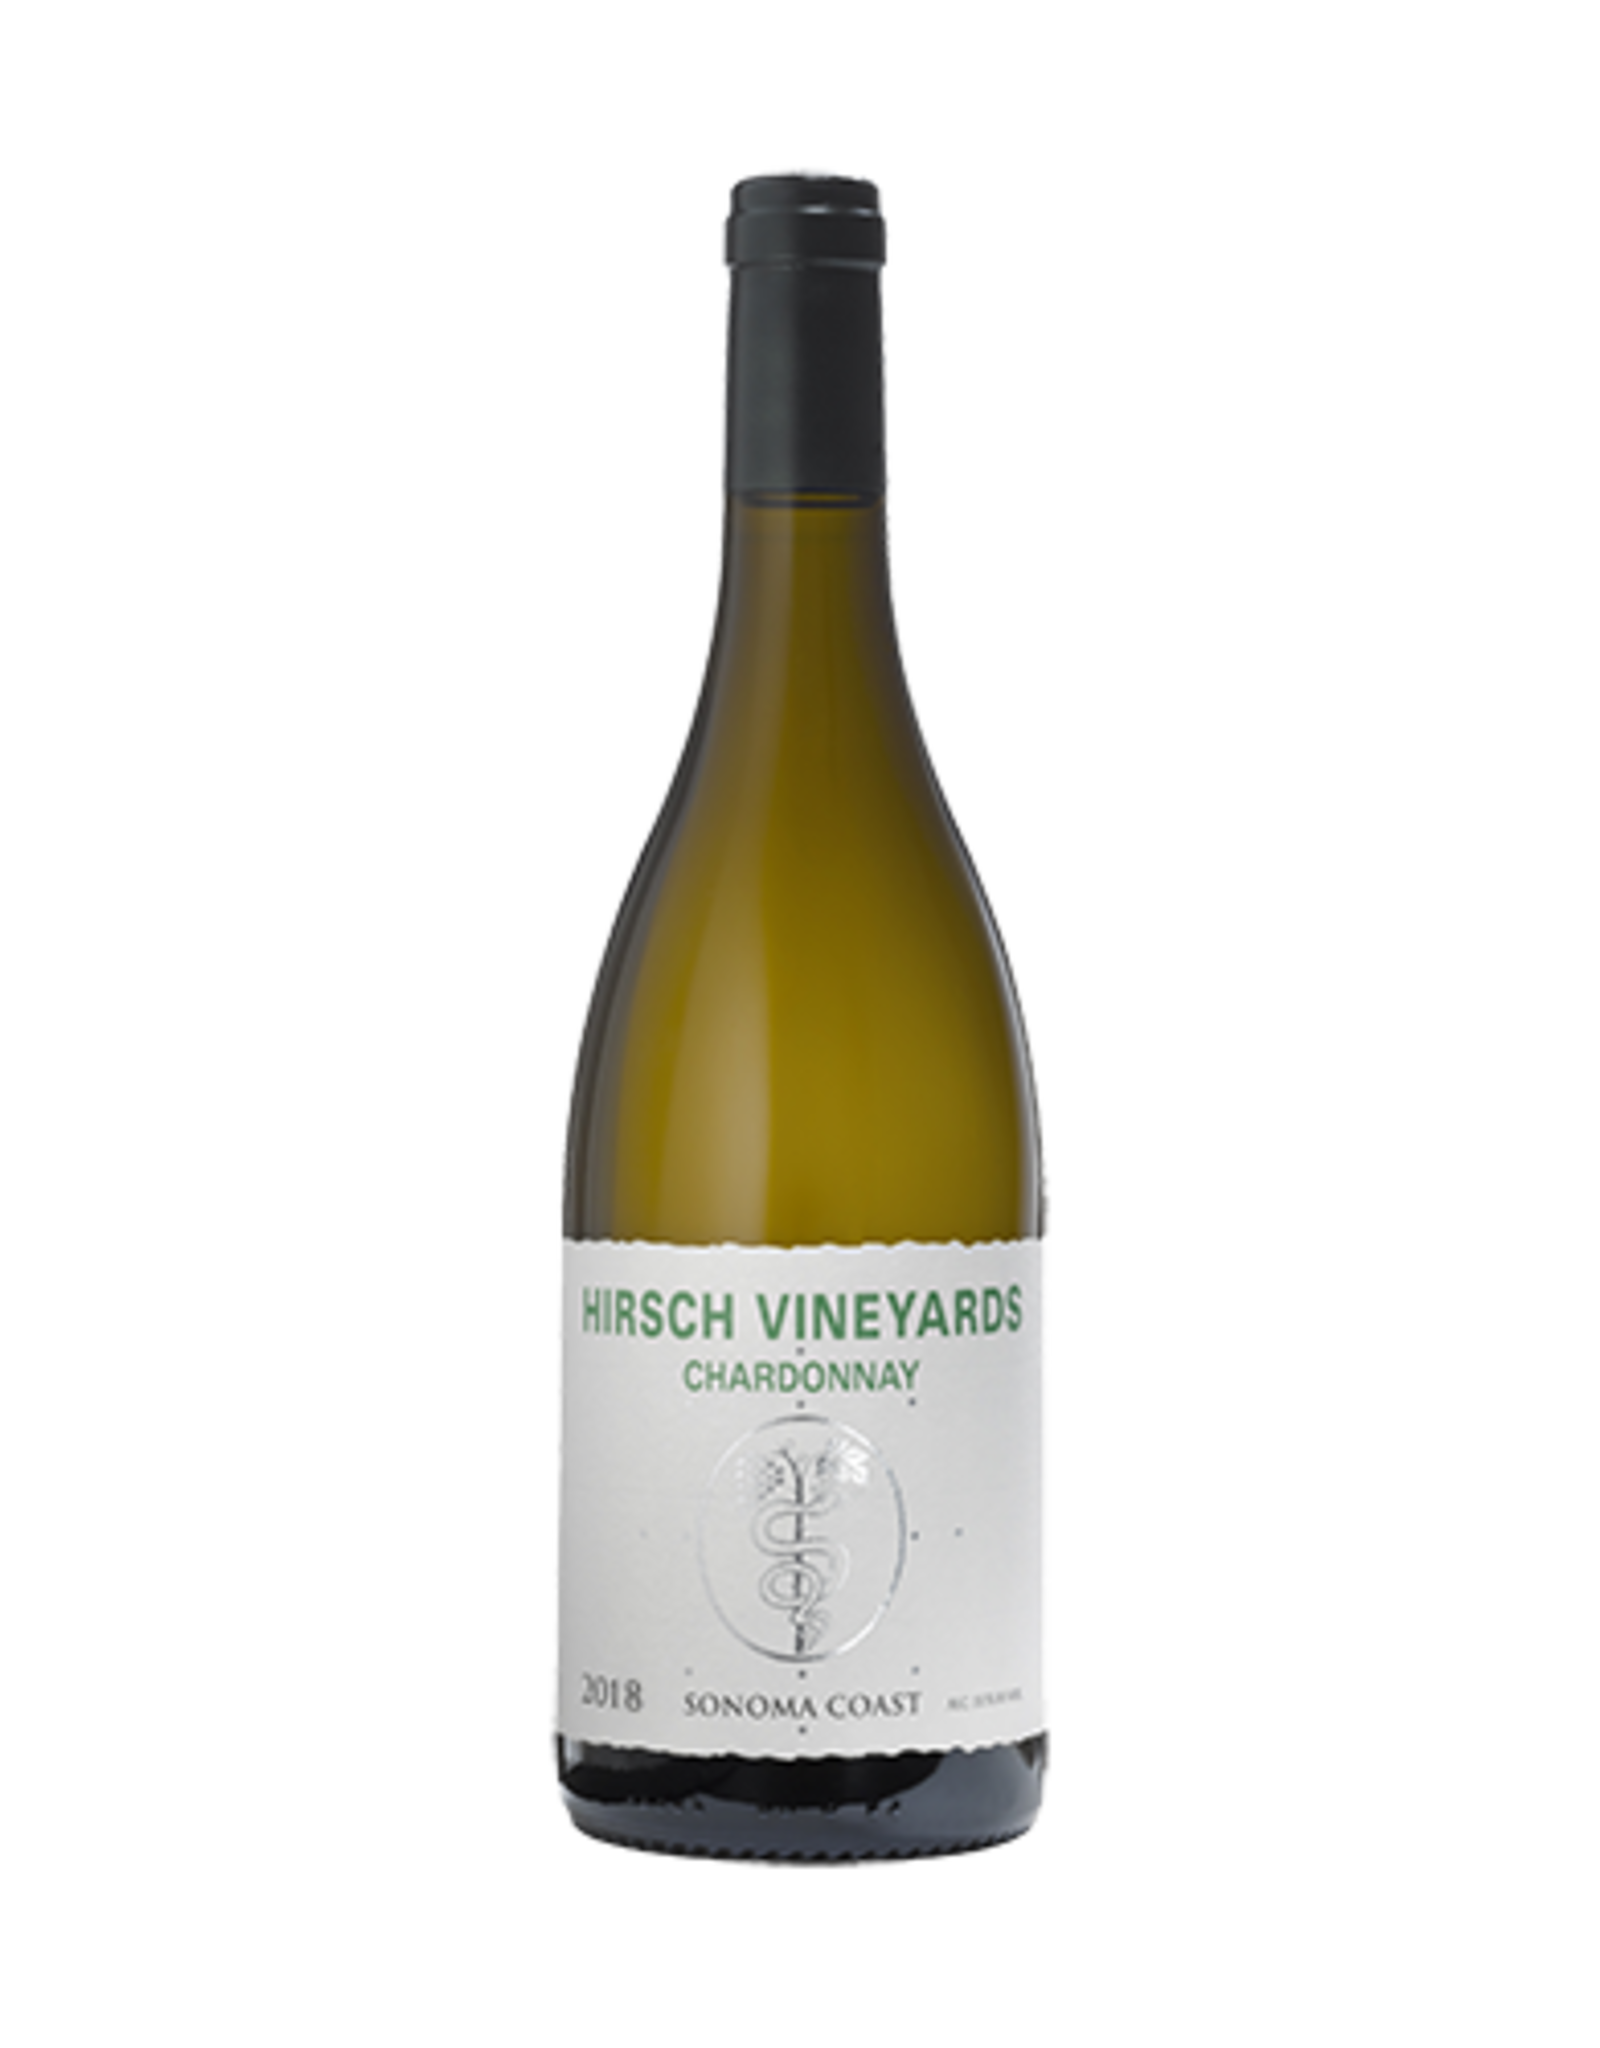 Hirsch Vineyards Chardonnay 2016